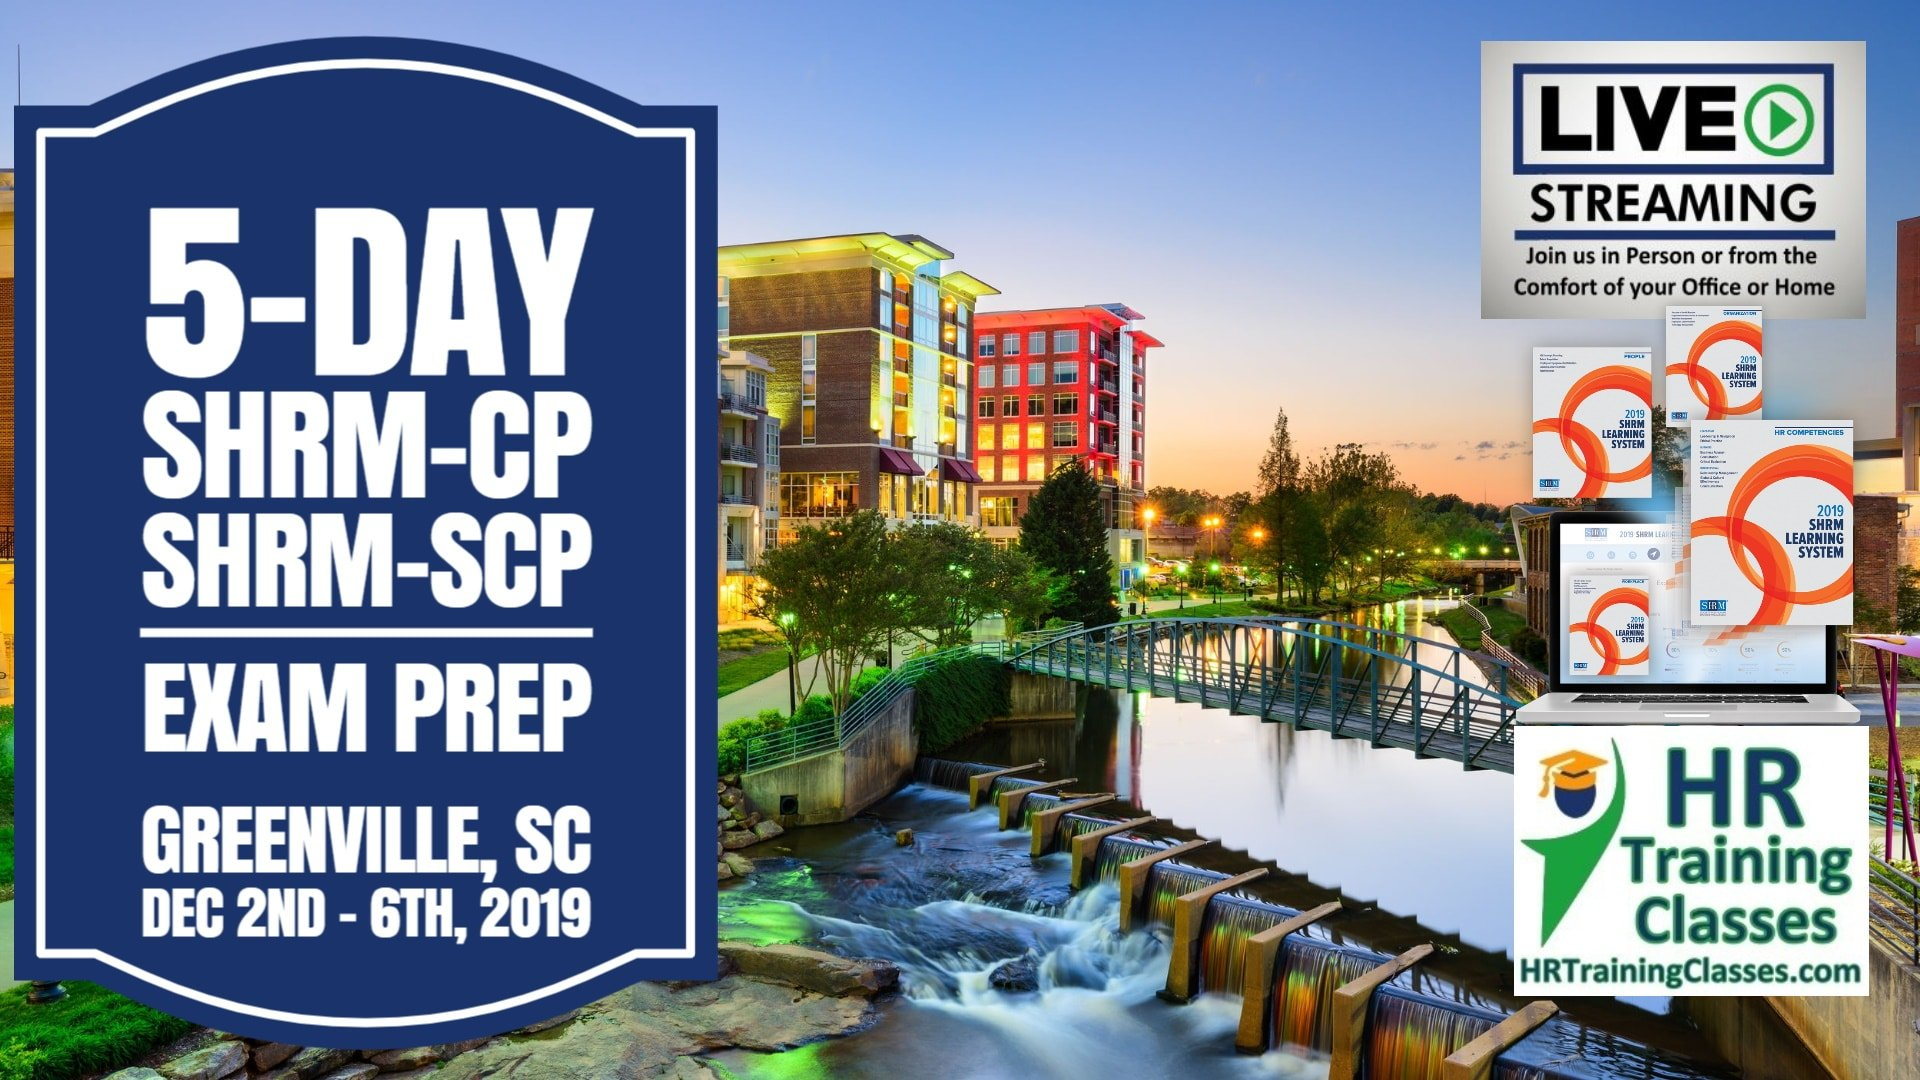 5-Day SHRM-CP and SHRM-SCP Exam Prep Boot Camp in Greenville, SC (Starting 12-2-2019)